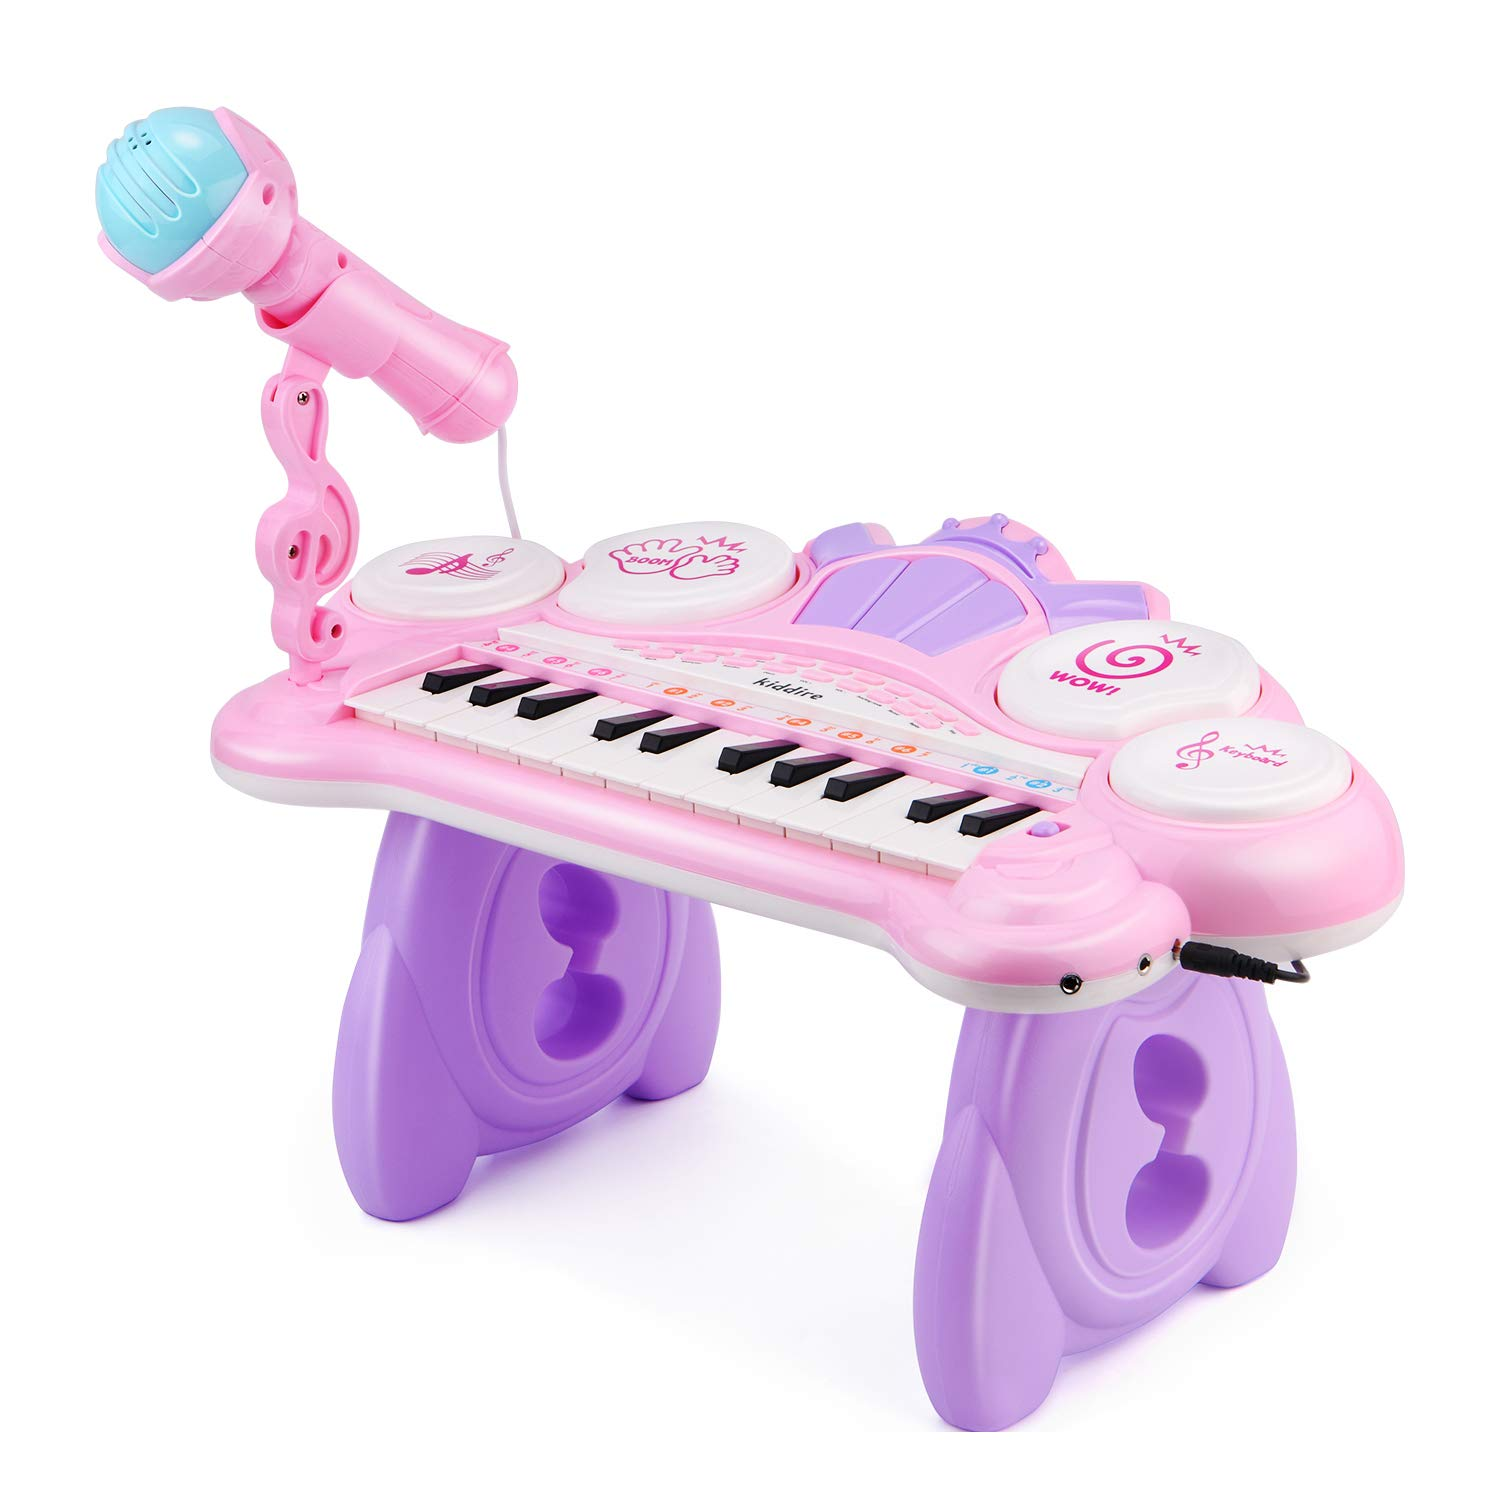 Image result for child's keyboard as christmas gift